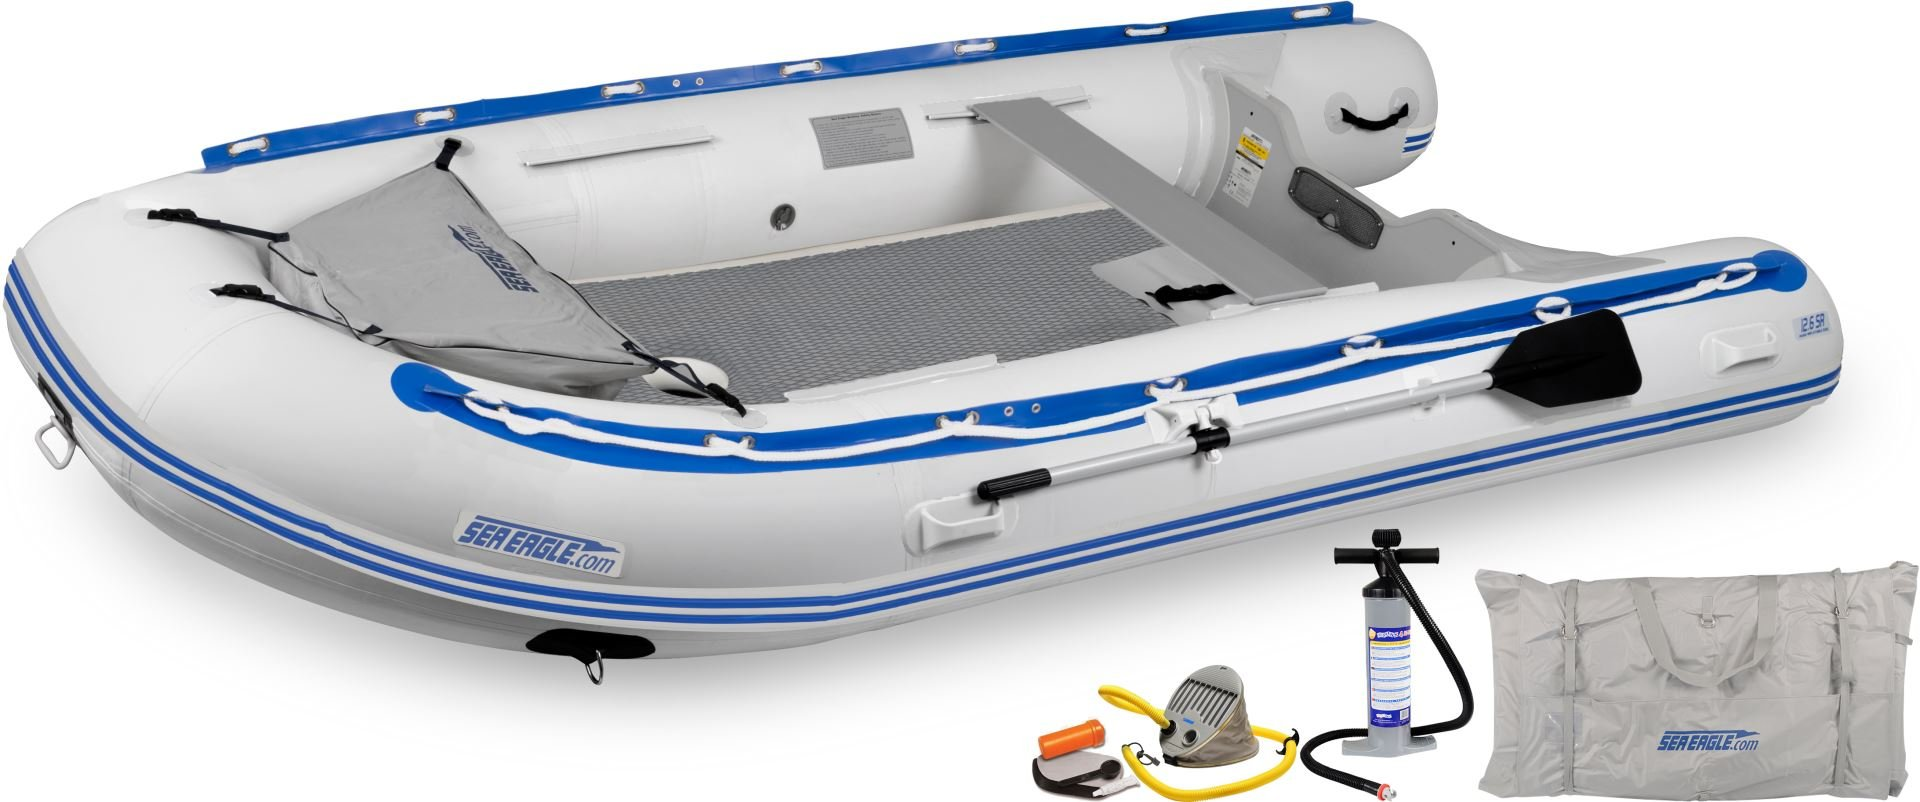 Sea Eagle Inflatable Sport Runboat with Rigid Floor